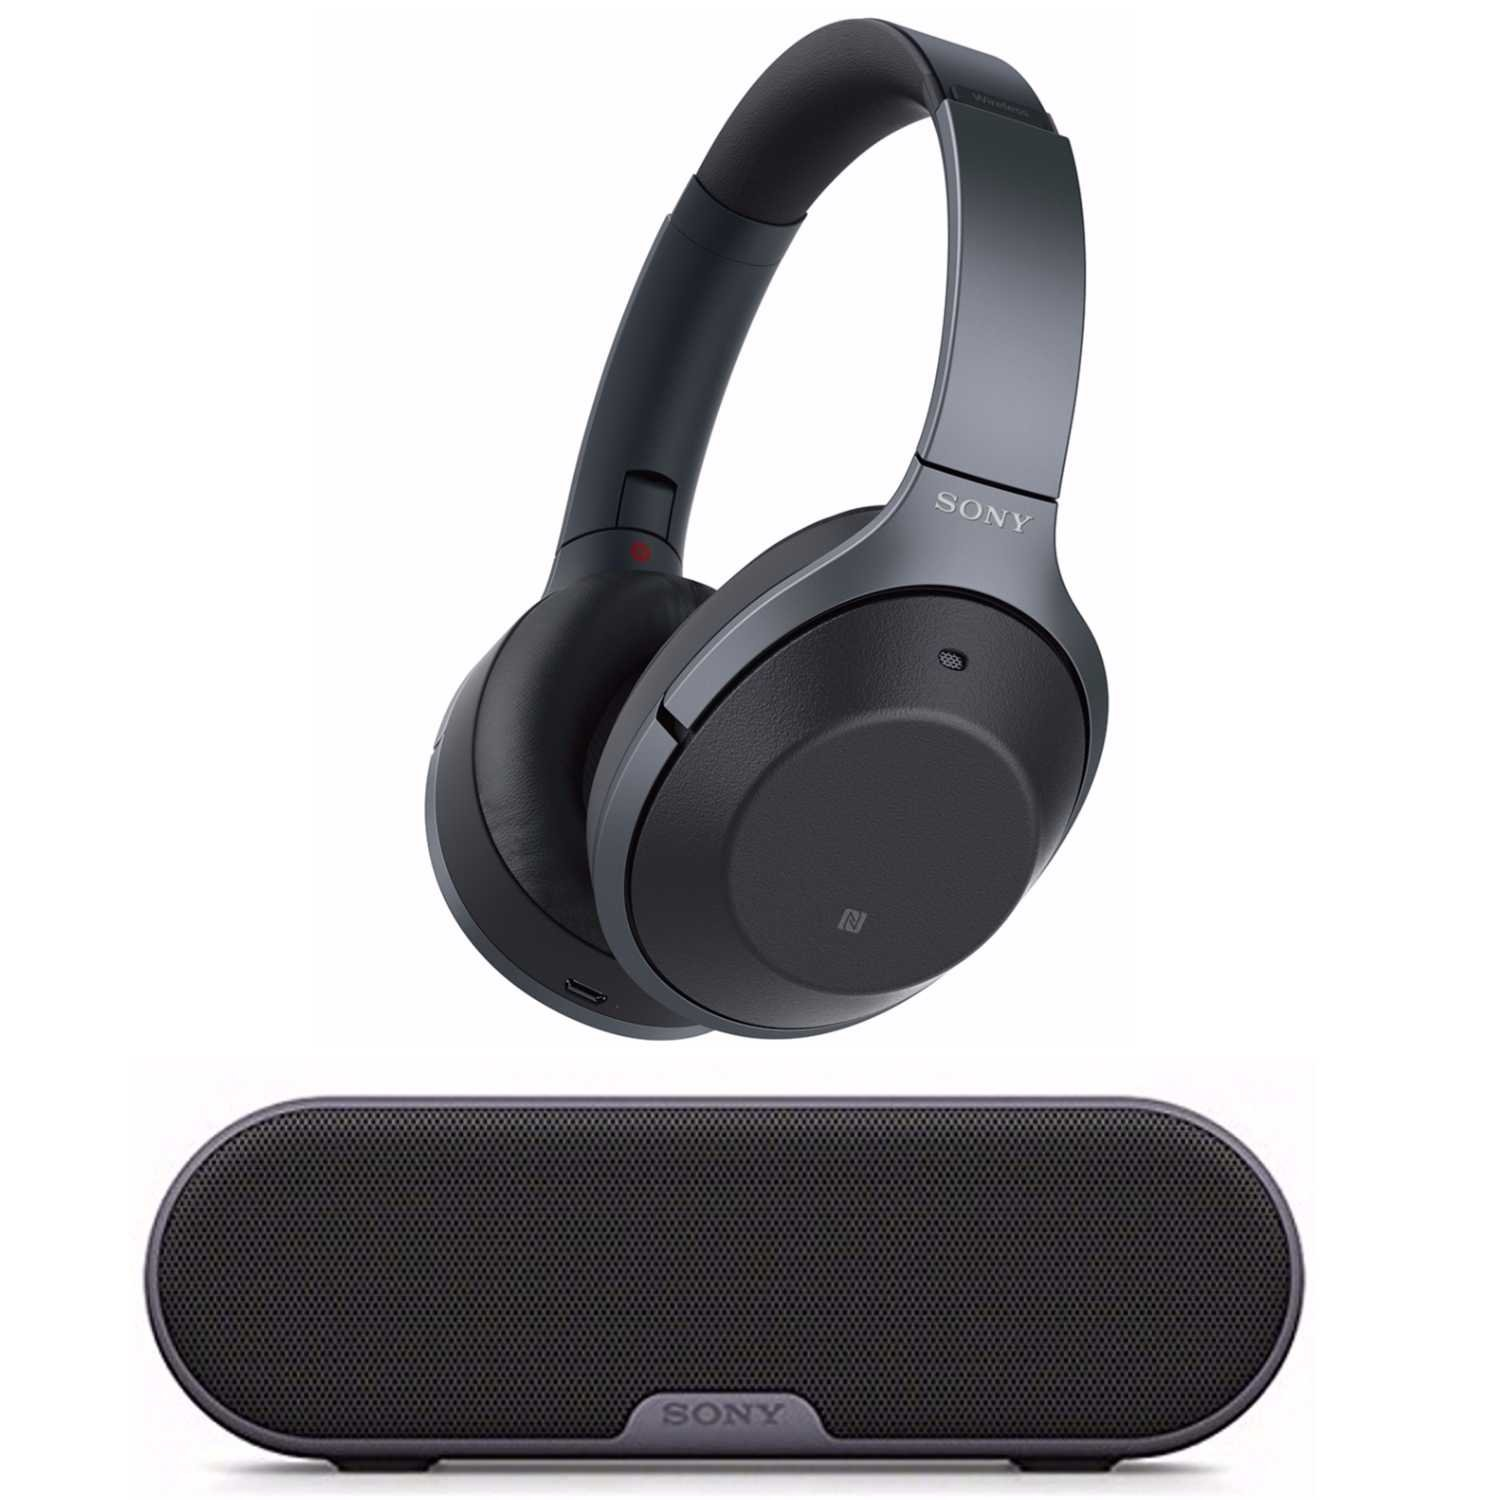 Sony Noise Cancelling Headphones WH1000XM2: Over Ear Wireless Bluetooth Headphones with Case - w/ Sony SRS-XB2 Portable Wireless Speaker with Bluetooth and NFC (Black)